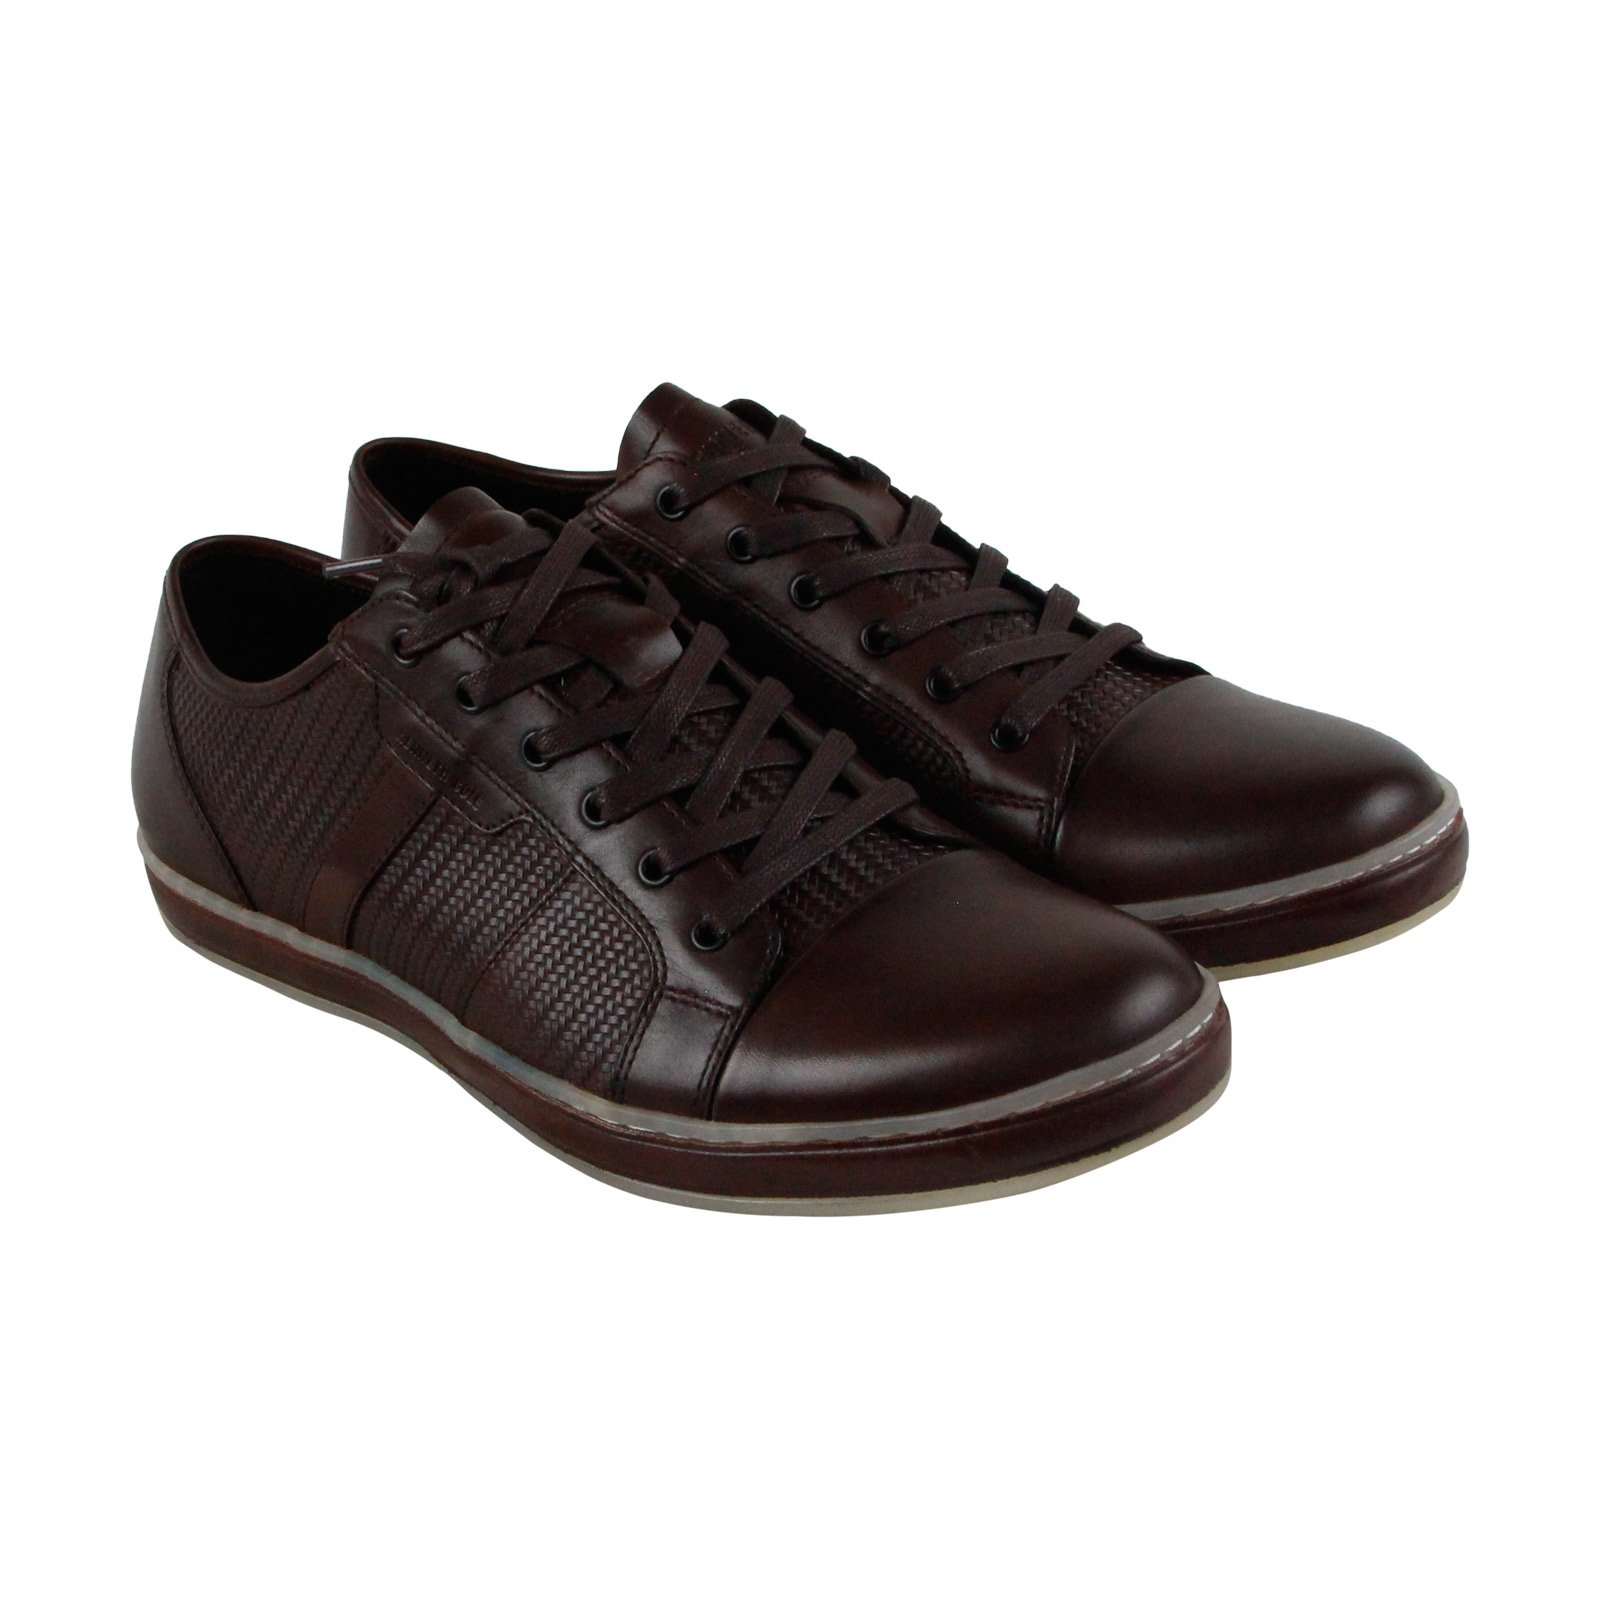 Kenneth Cole New York Brand Wagon 2 Mens Brown Leather Sneakers Shoes 9.5